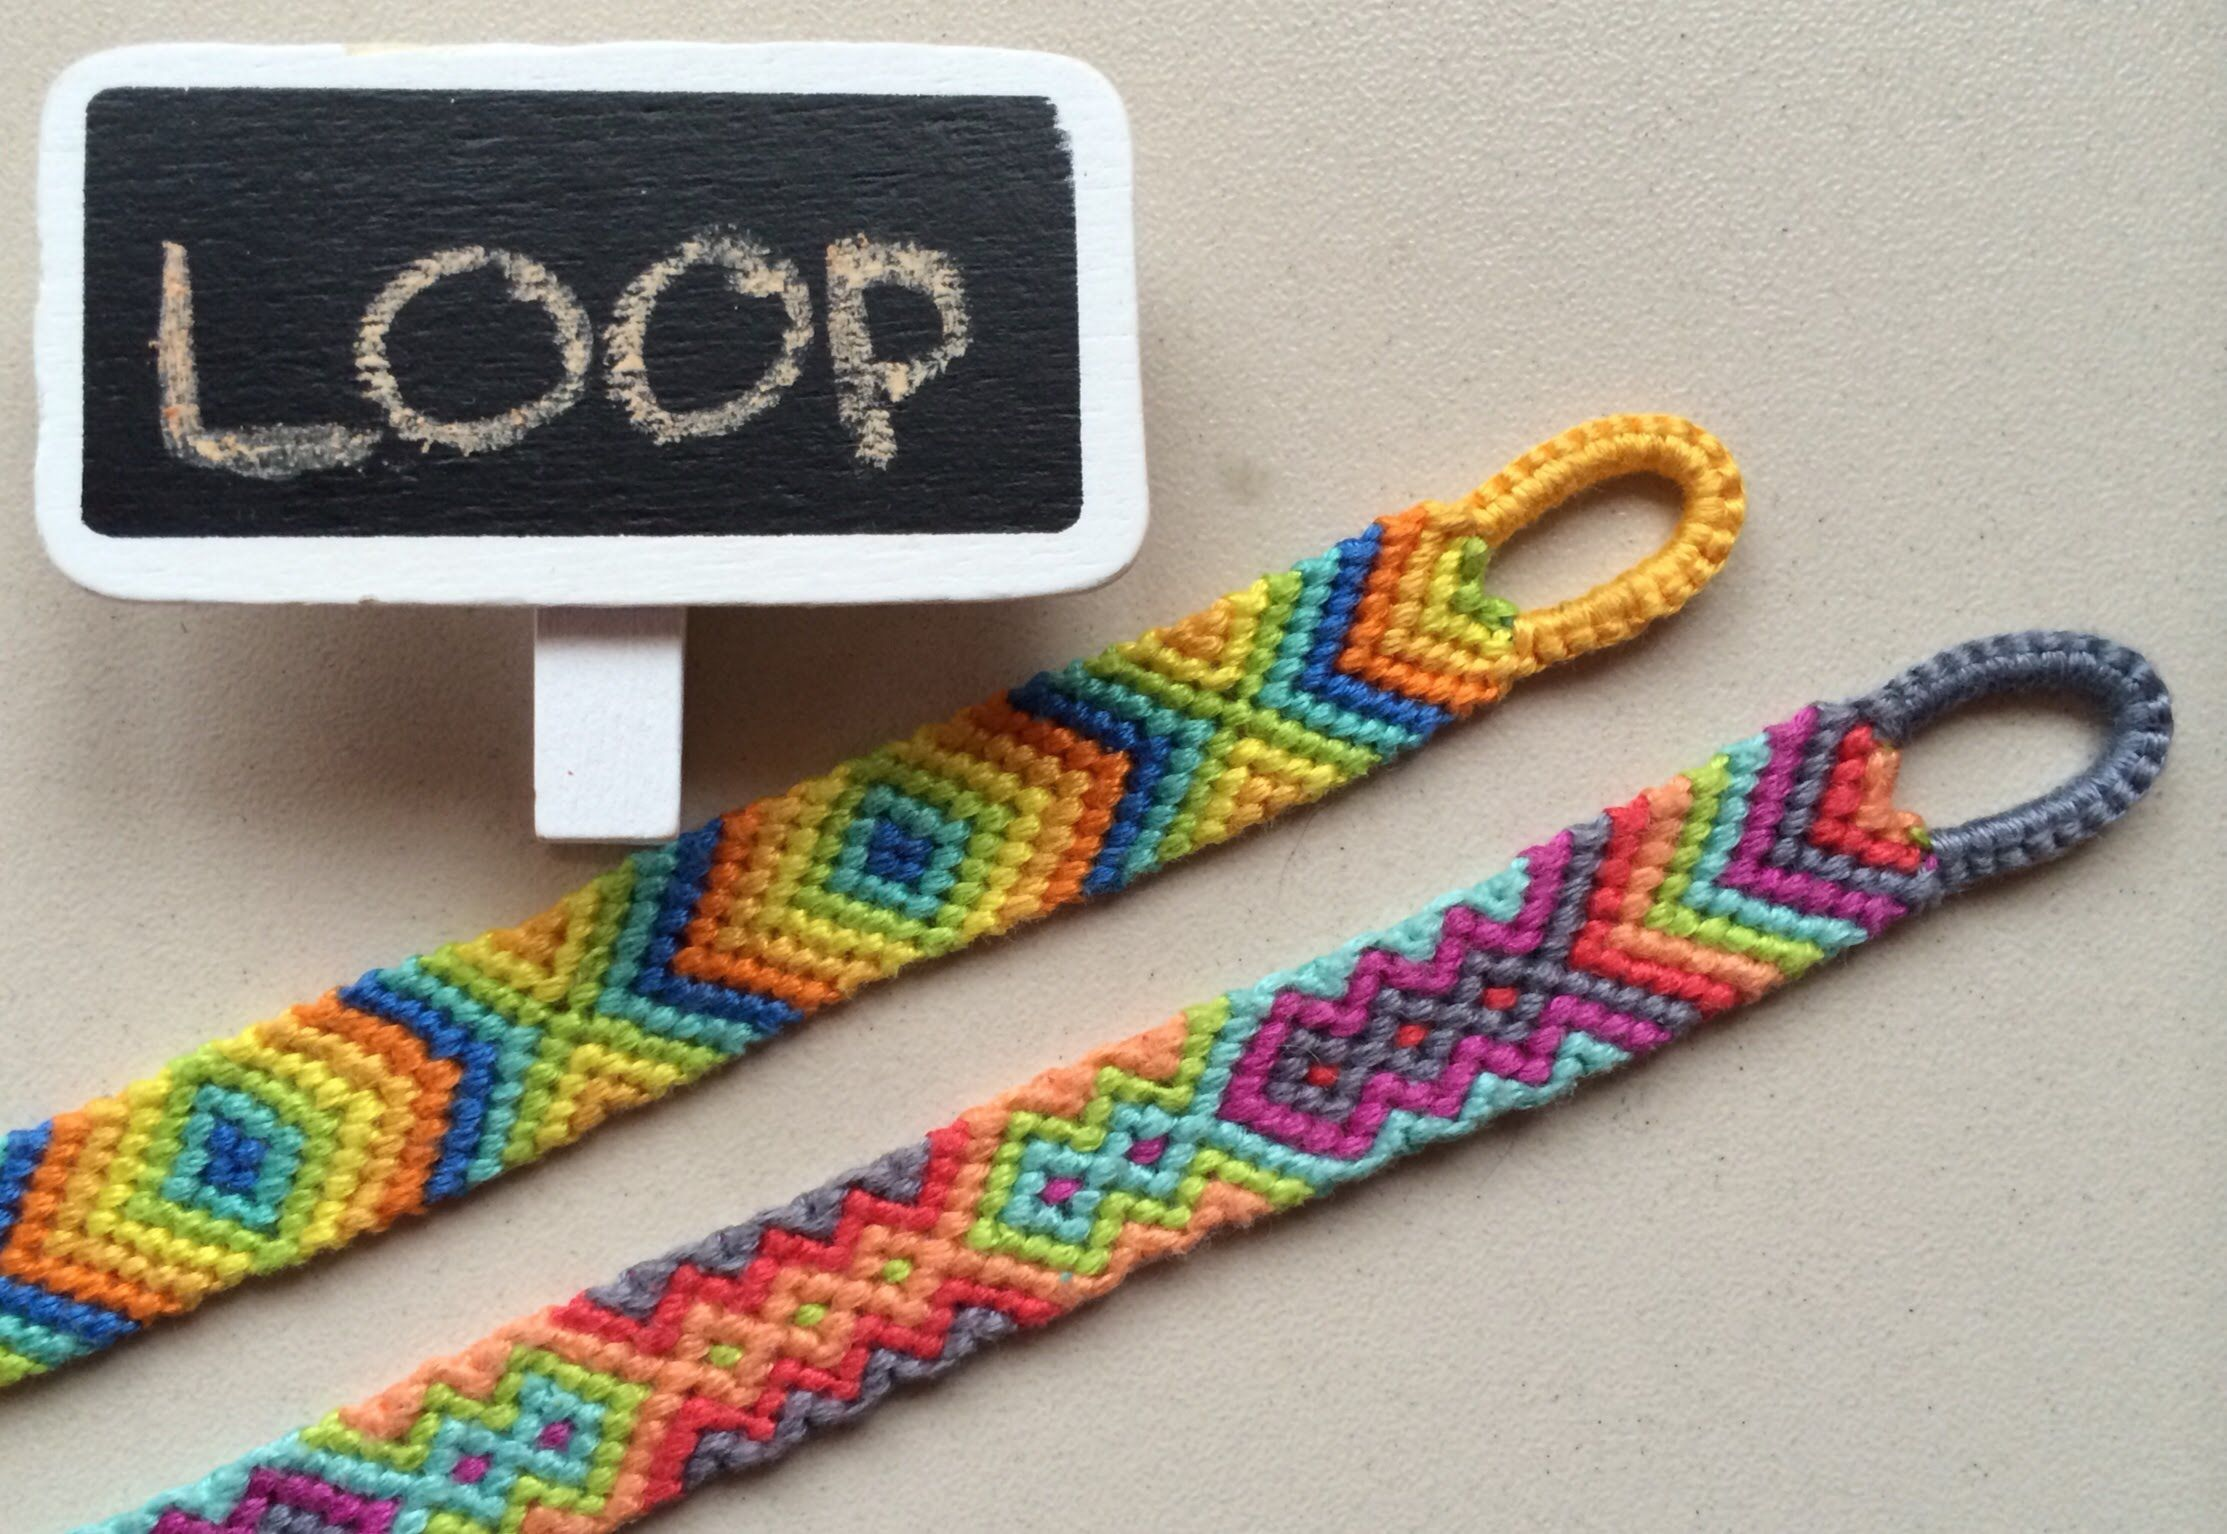 Easy way to make quality loop for your friendship bracelet or any